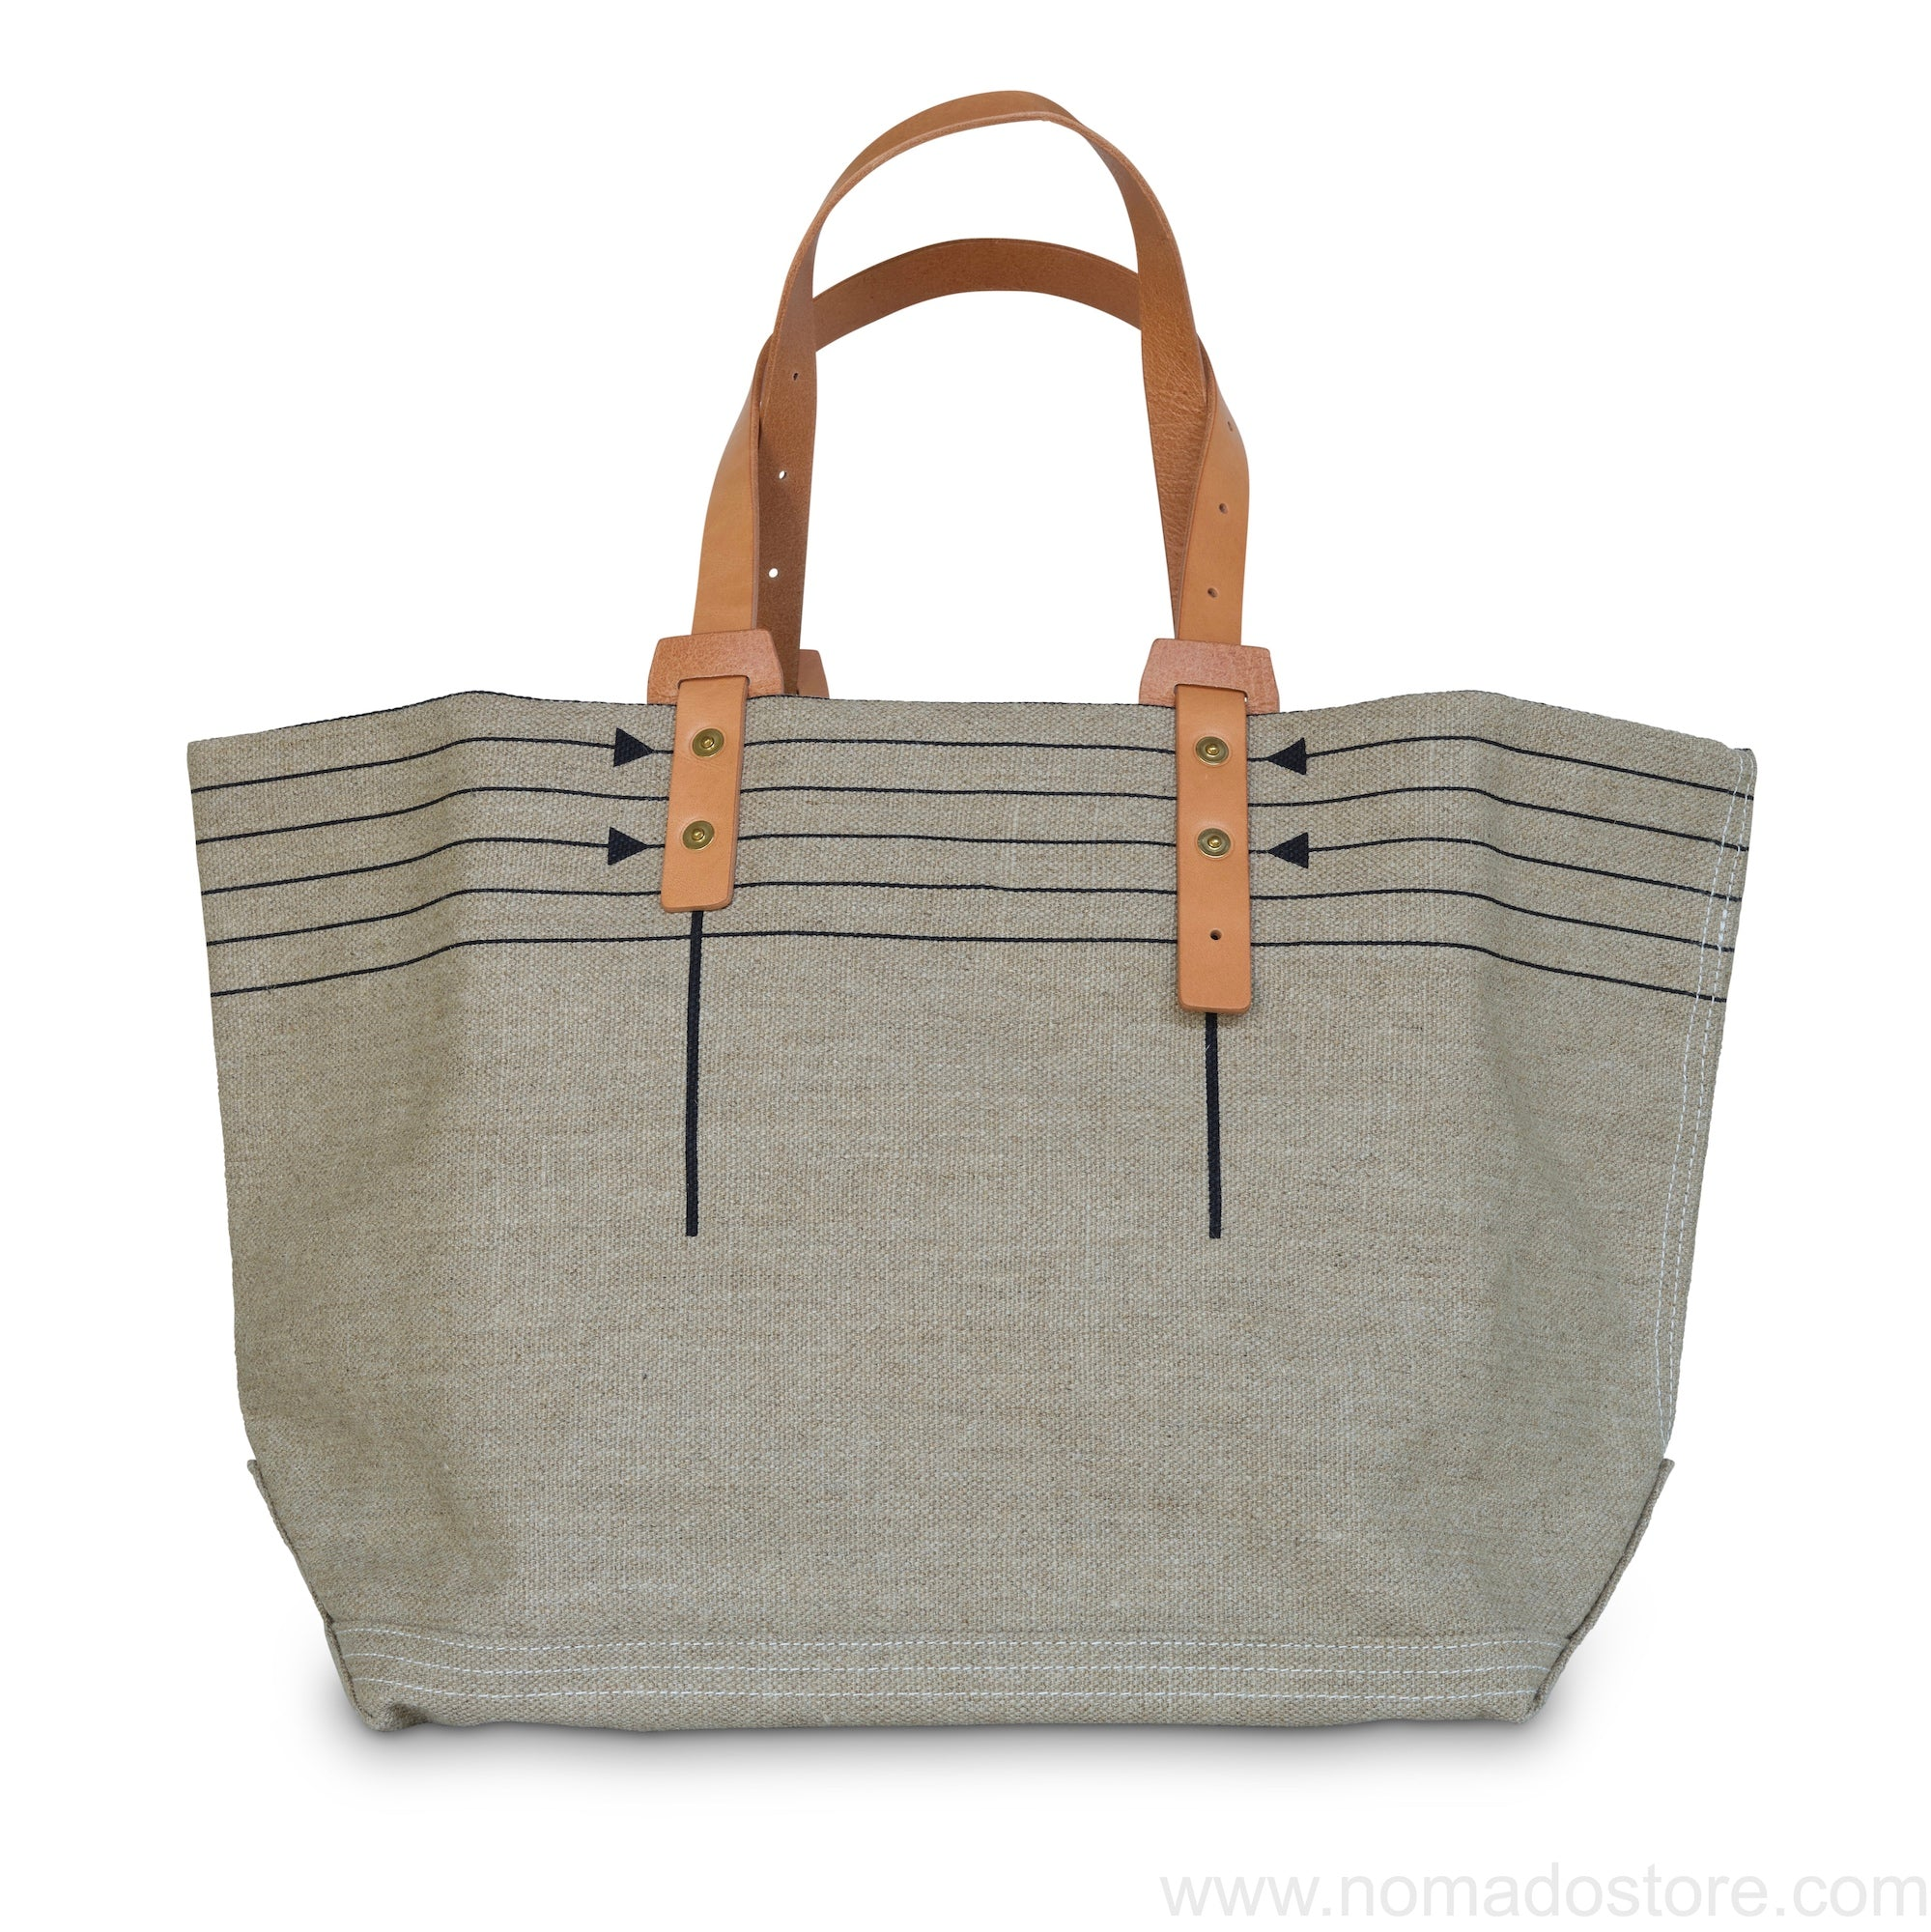 .urukust Canvas Tote Bag M (Natural/Black) - NOMADO Store